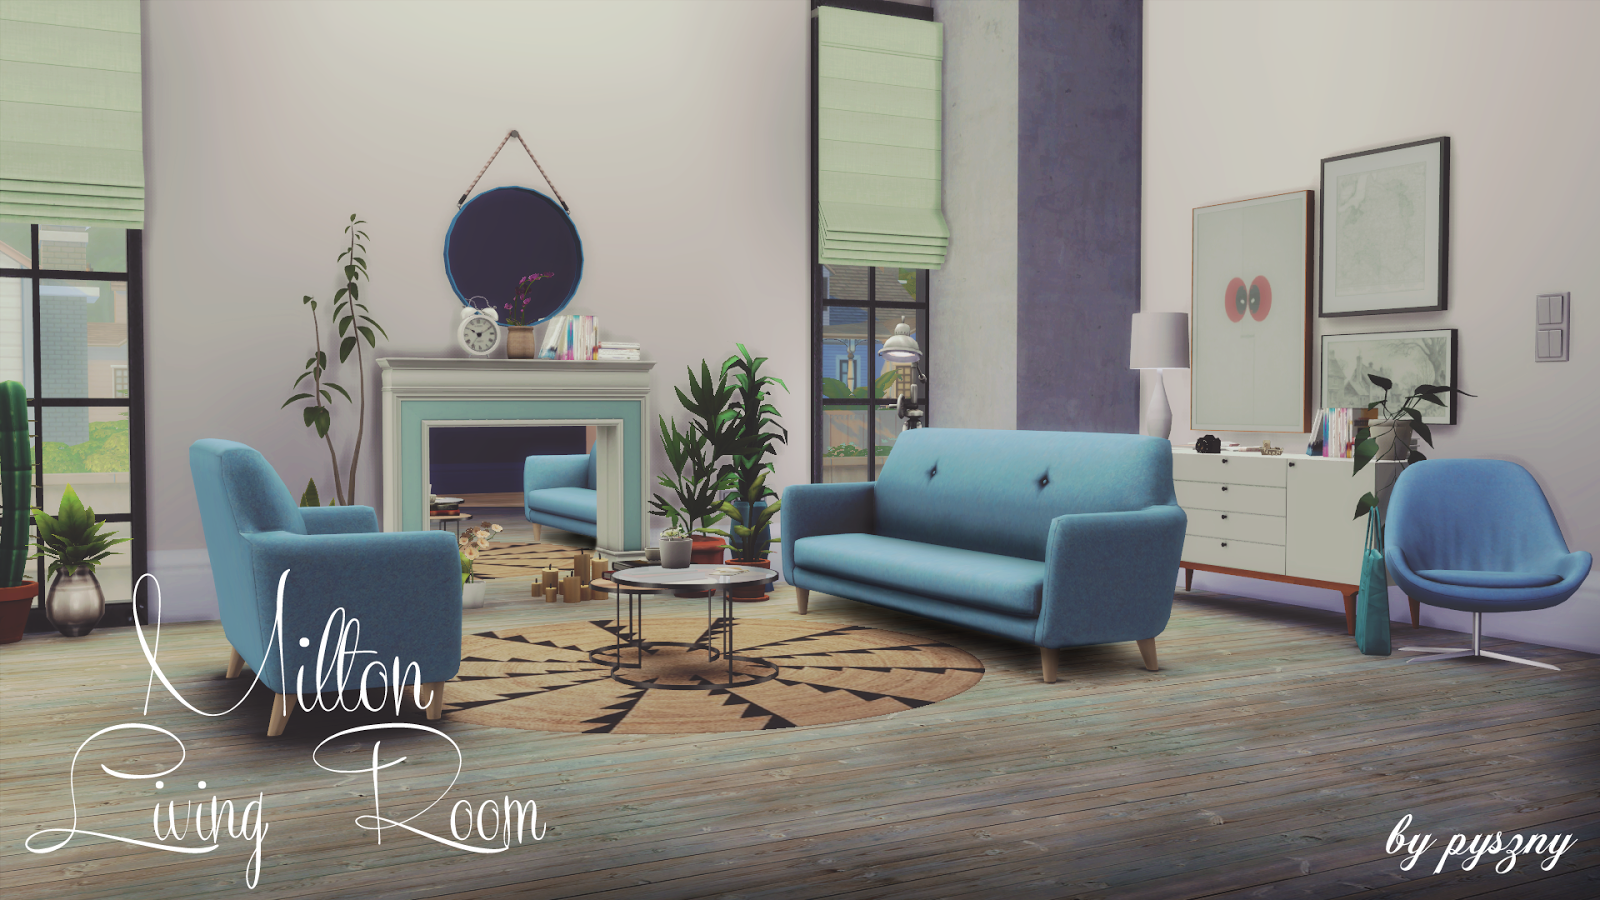 My Sims 4 Blog: Milton Living Room Set by Pyszny